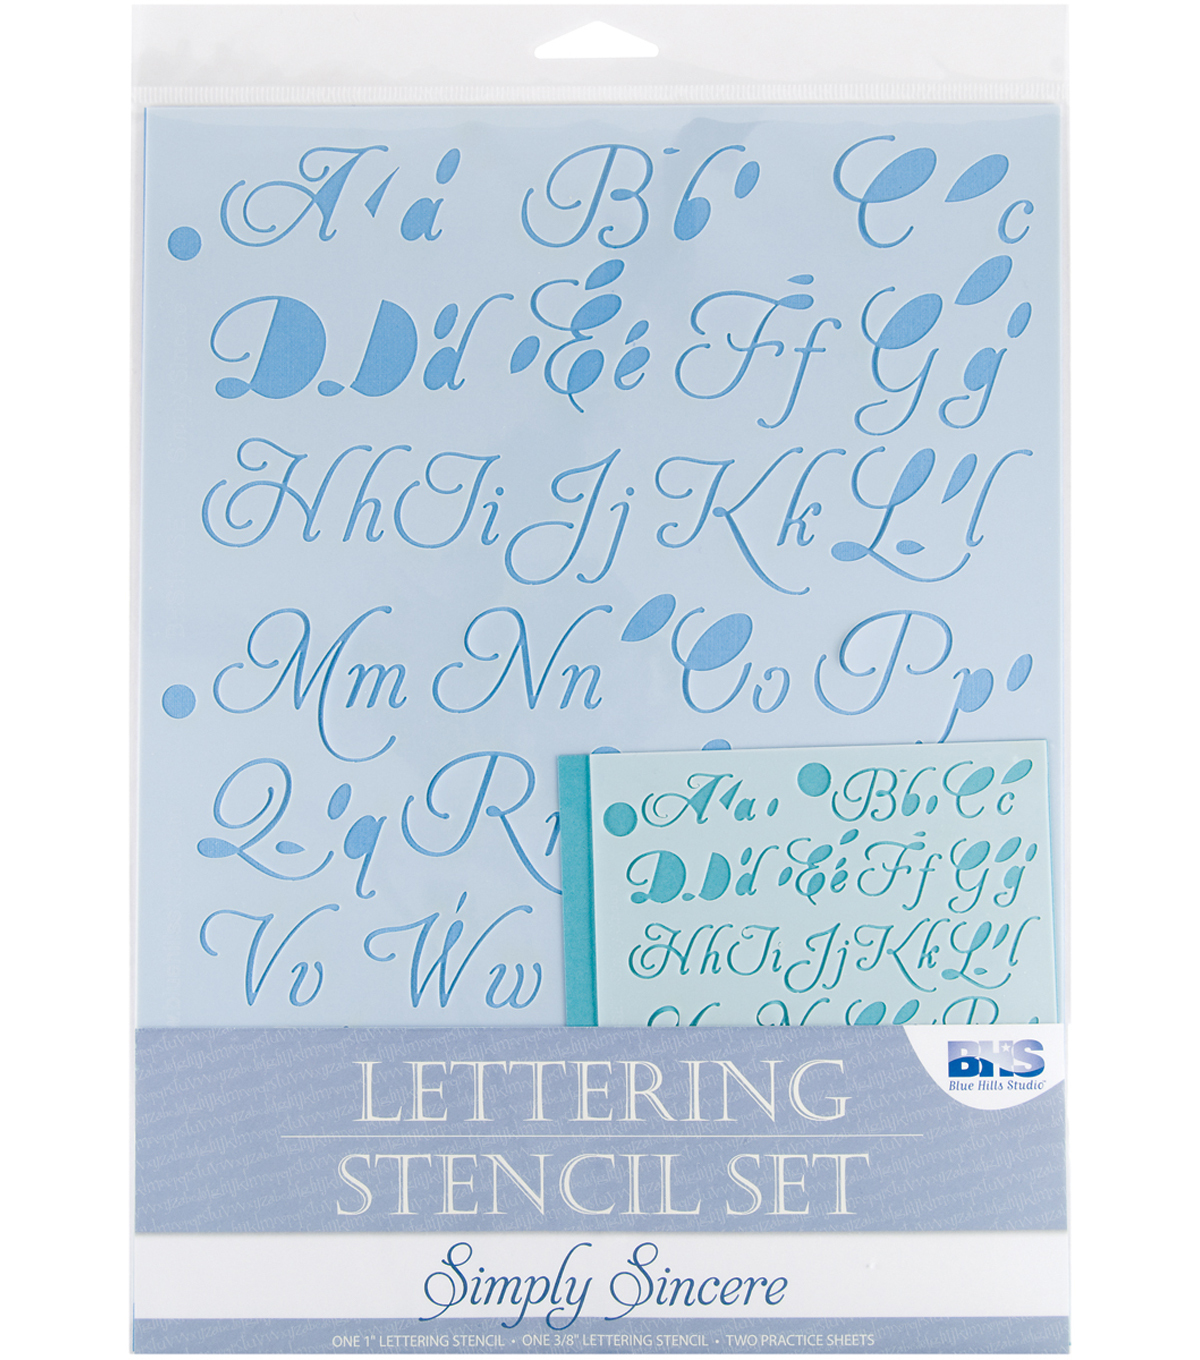 Blue Hills Studio  Lettering Stencil 4 Piece Sets-Simply Sincere